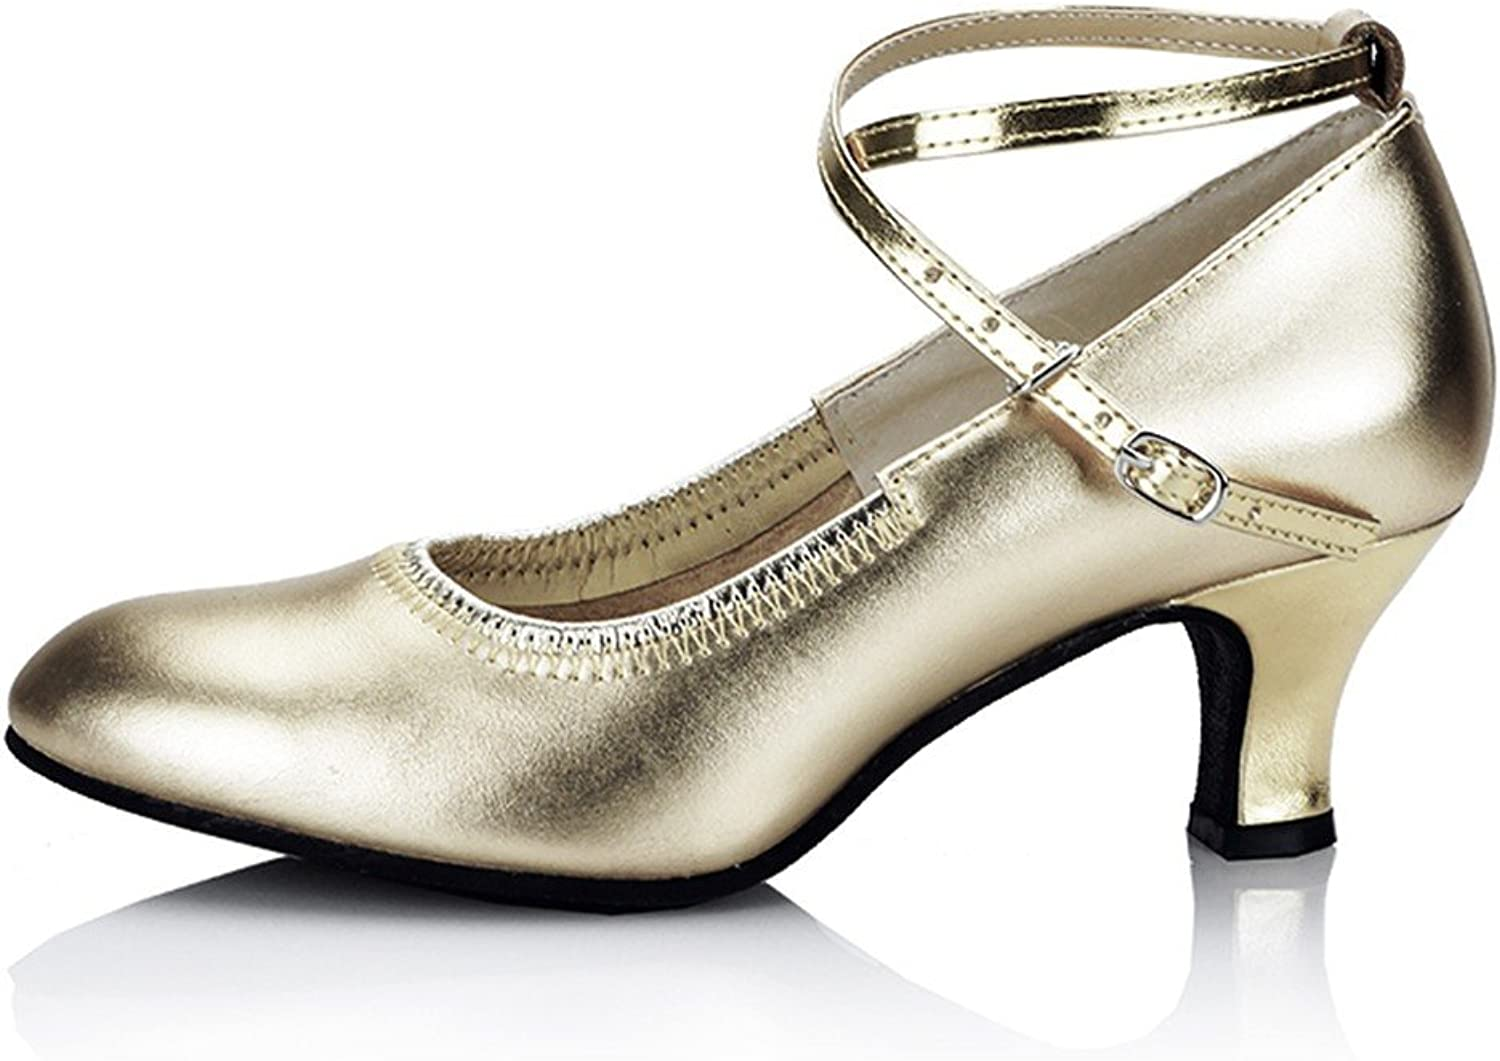 WXMDDN The golden Dancing shoes 5.5cm Soft, Latin Dance shoes Adult Seasons in Quite The Dance Dance shoes